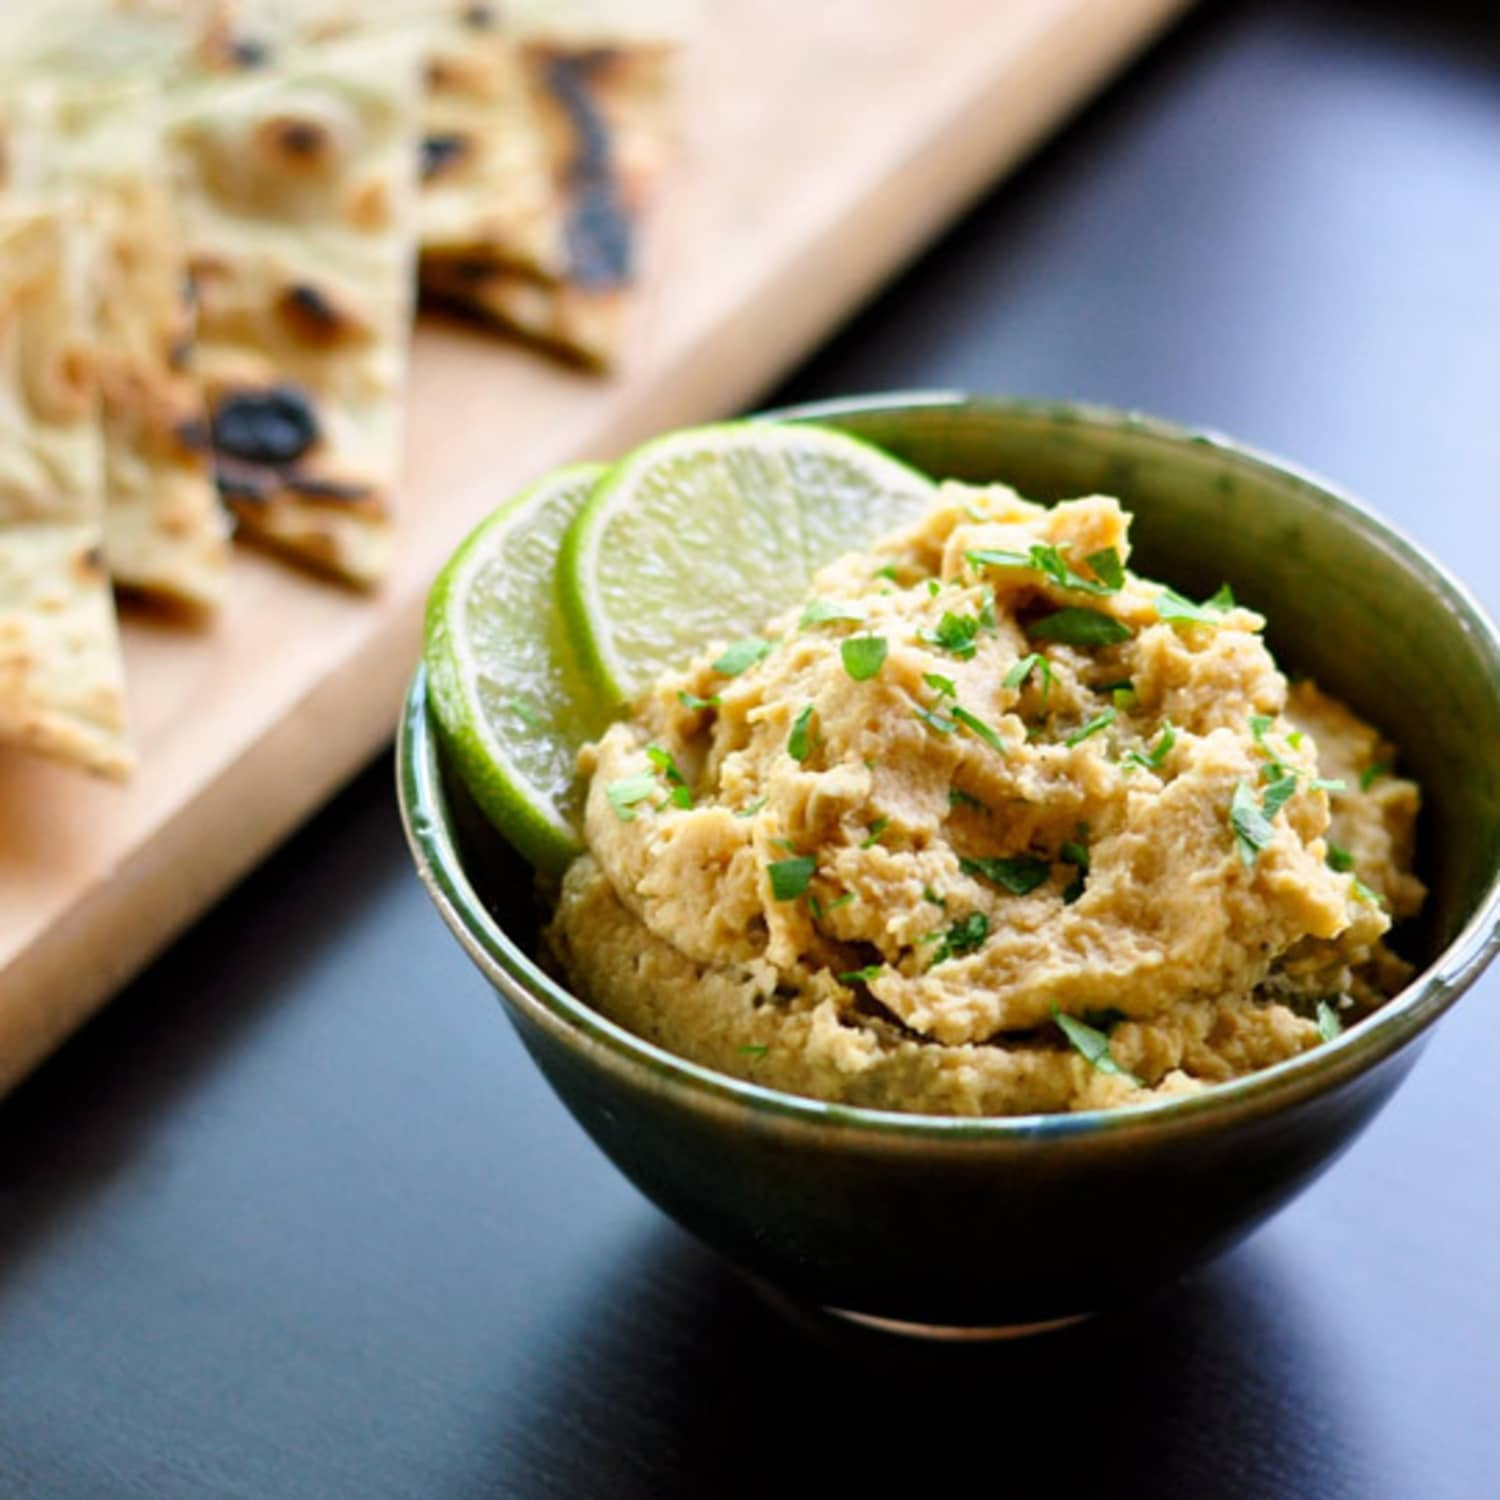 Easy Appetizers And Dips: 10 Scrumptious Appetizer Dips & Spreads Without Cheese